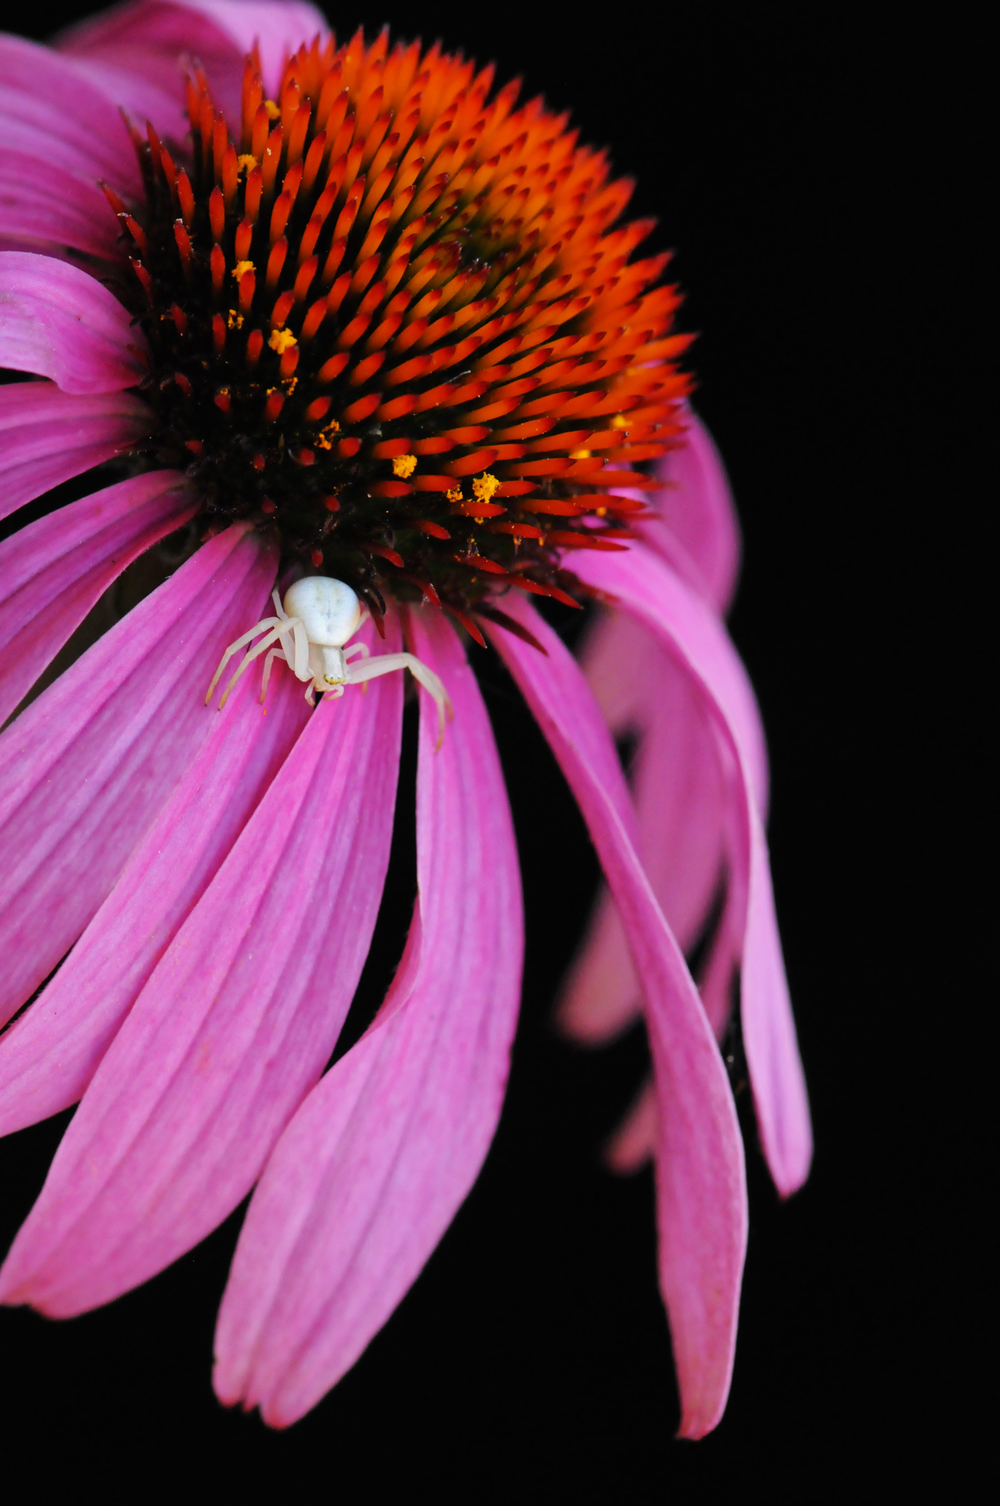 Goldenrod Crab Spider on Echinacea flower